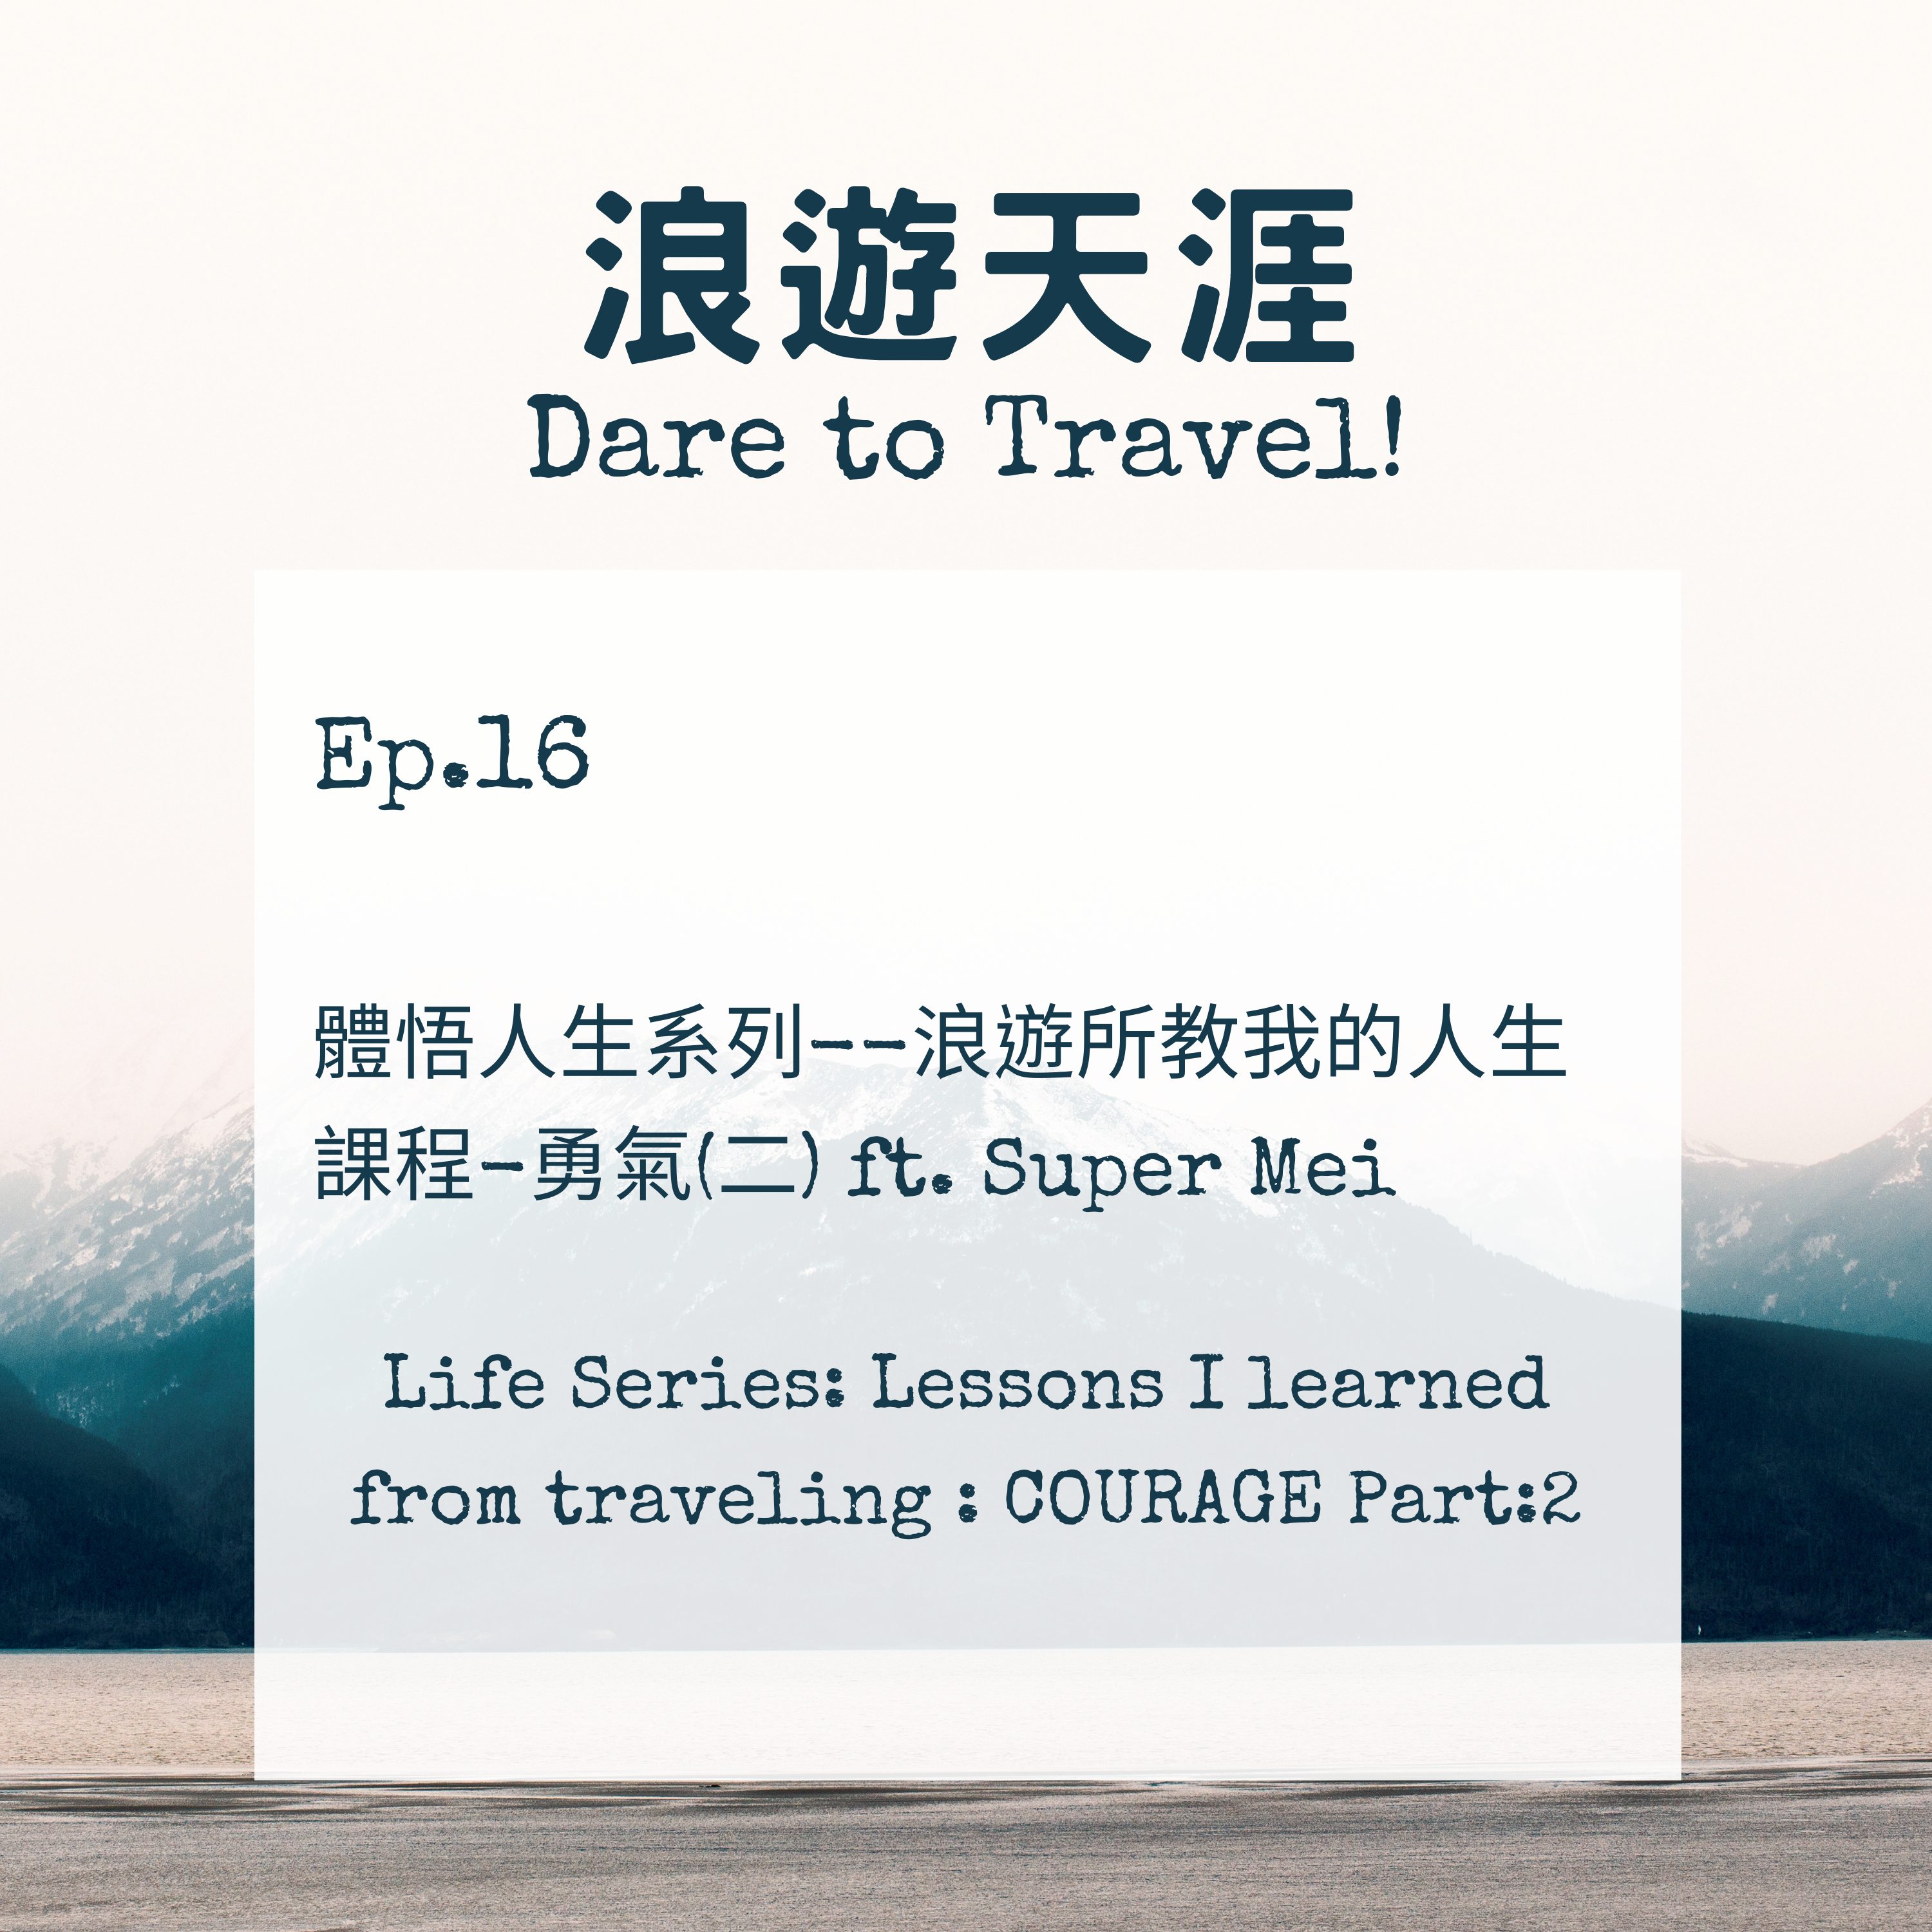 Ep.16 領悟人生-浪遊所教我的人生課程 : 勇氣 (二) Life Series : Lessons I learned from traveling : COURAGE Part:2